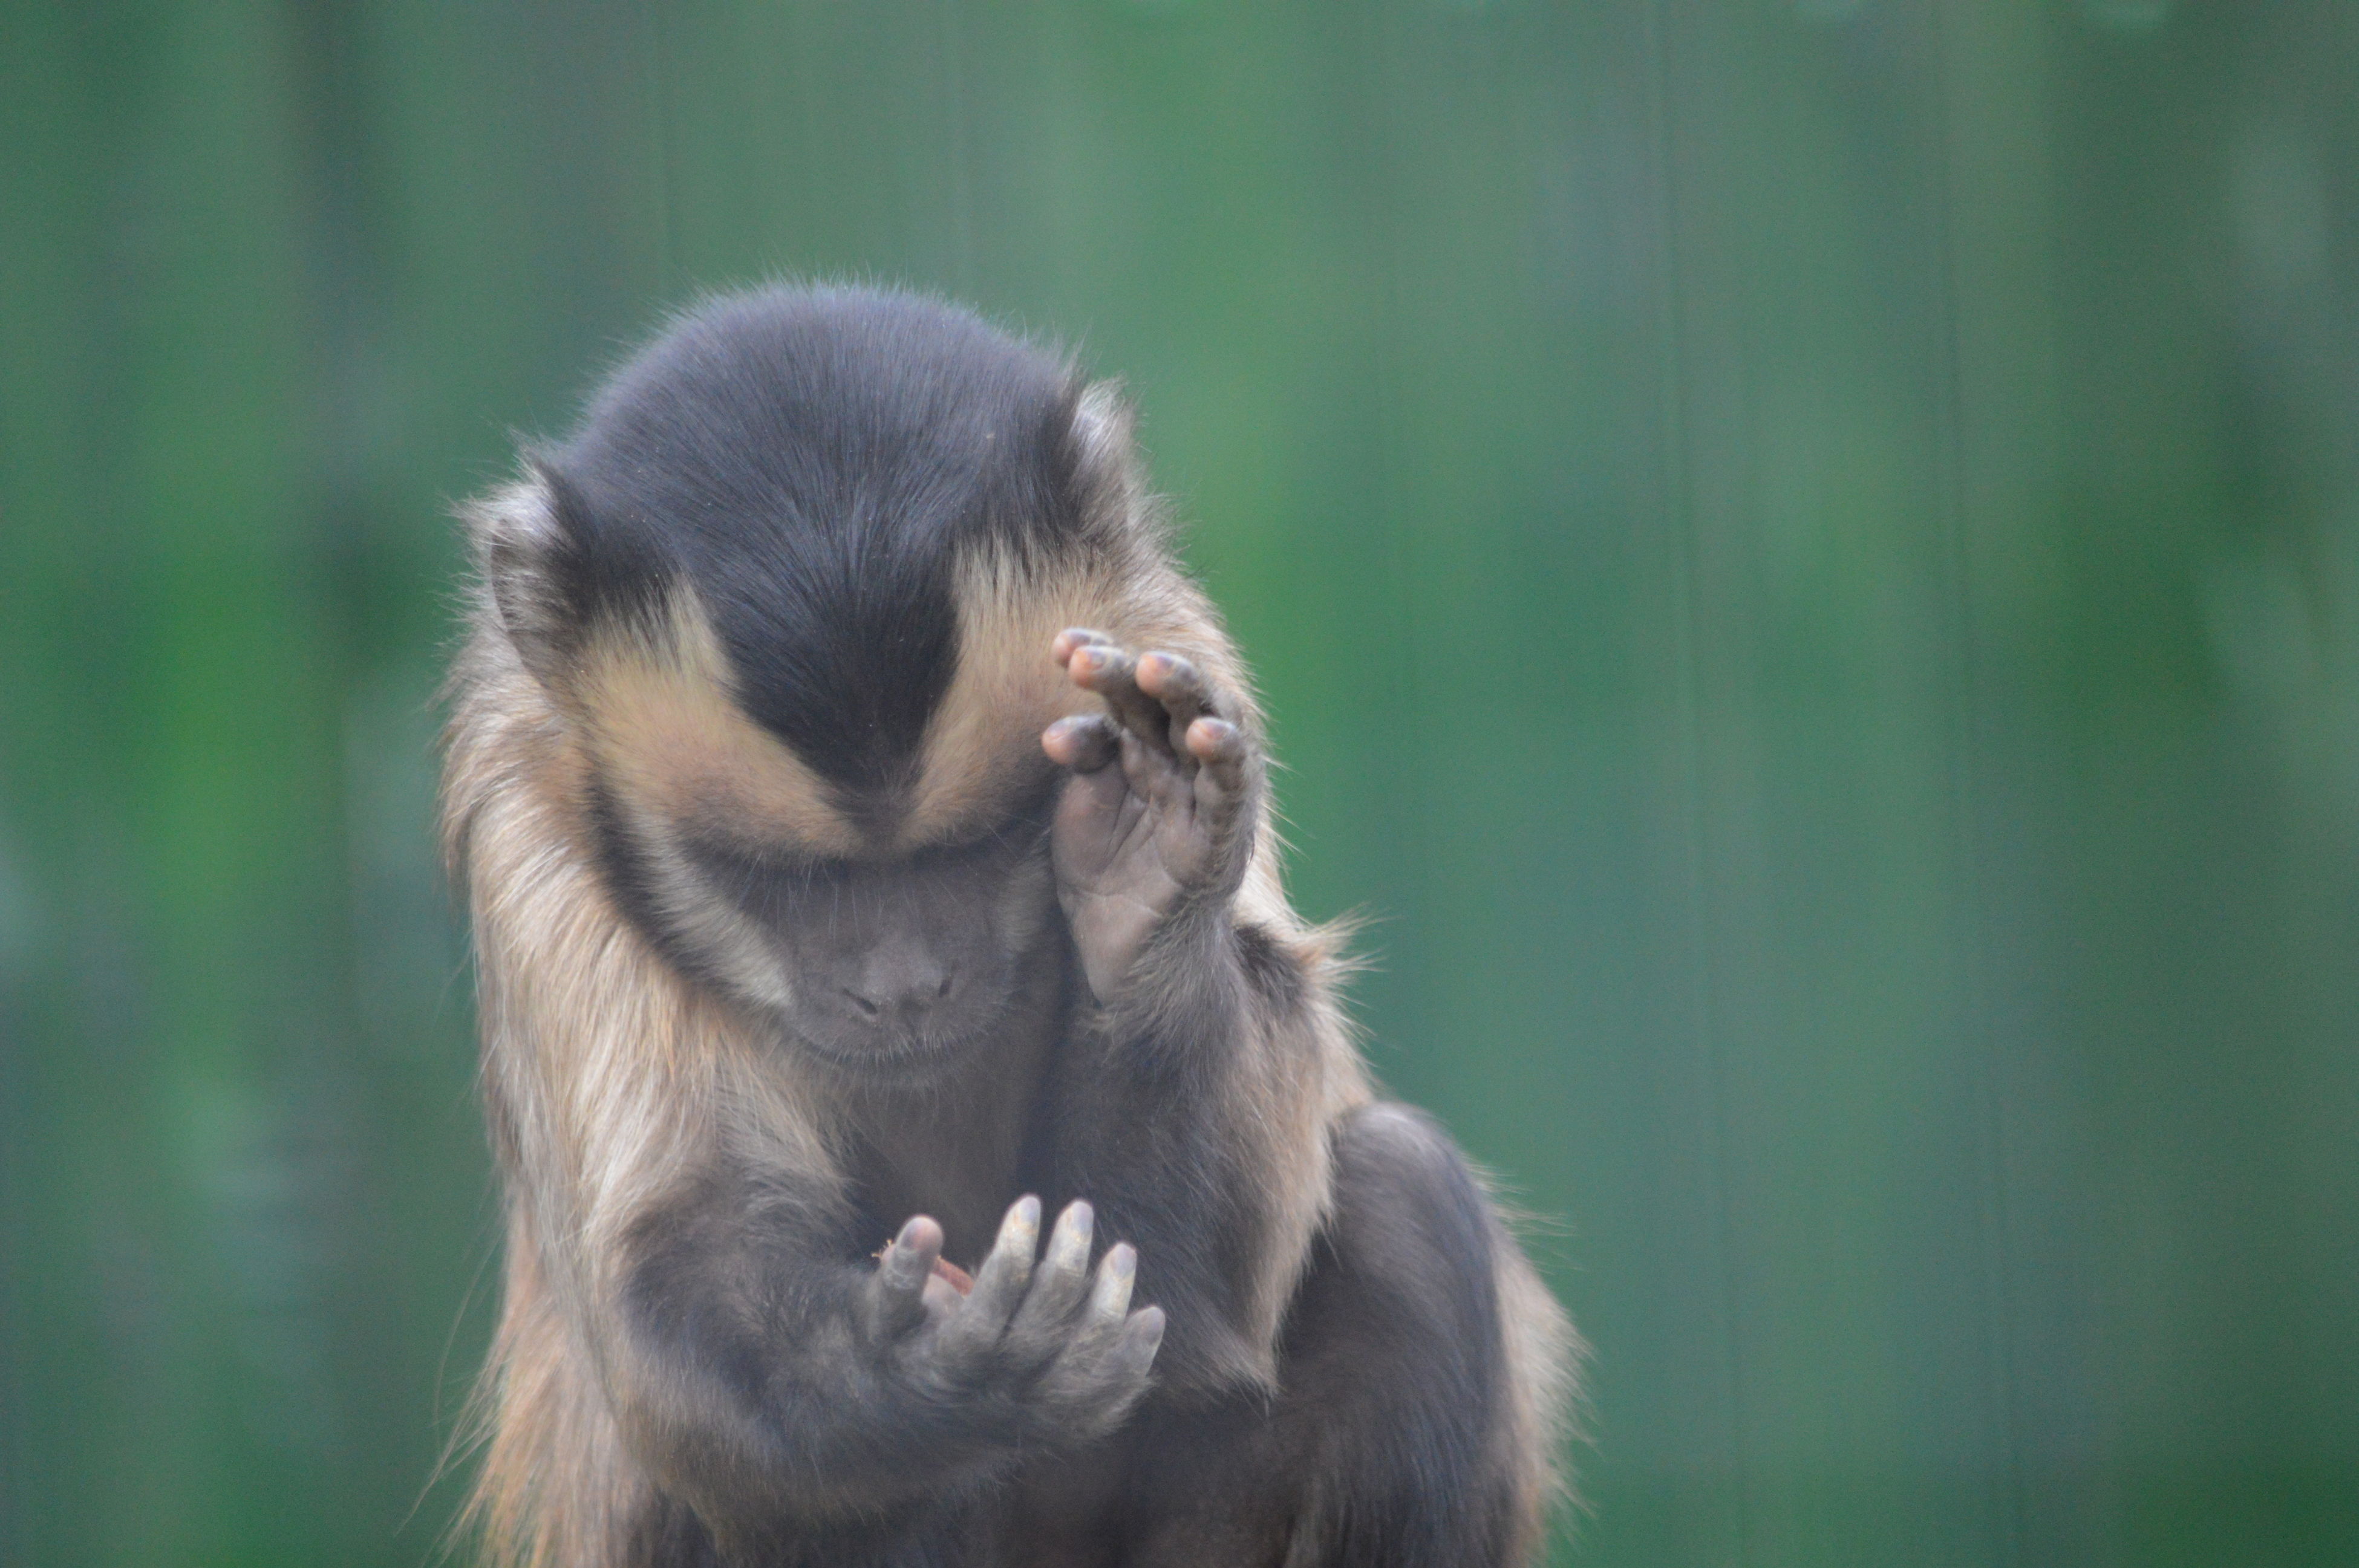 Clapping Animal Themes Animal Wildlife Animals In The Wild Clappig Mammal Monkey Nature No People